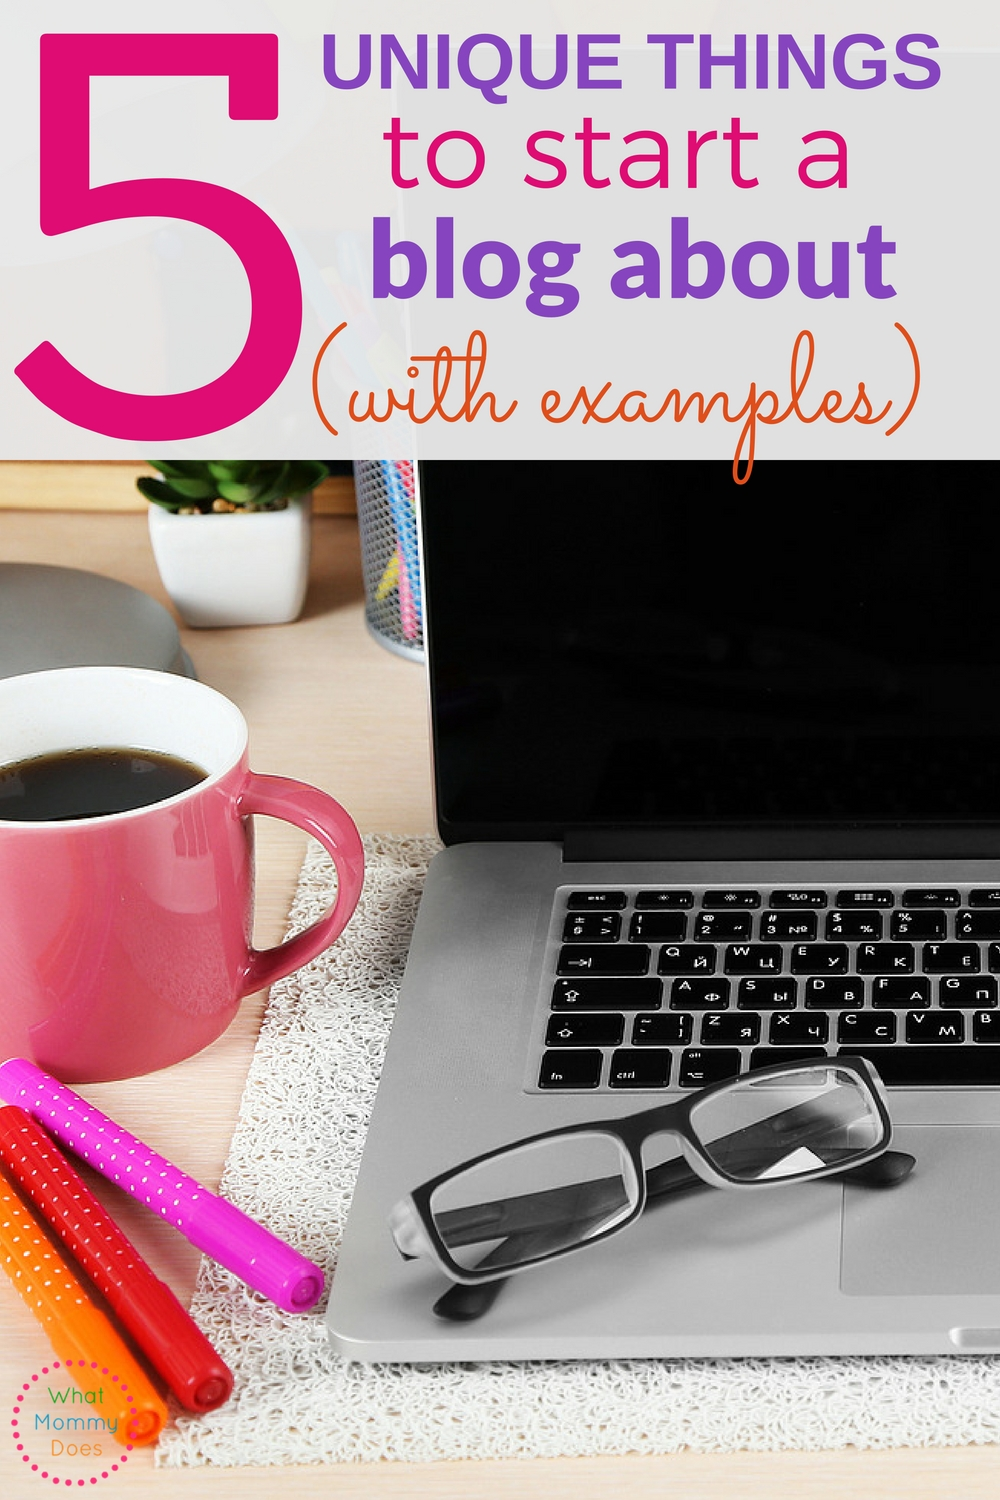 Need unique blog topics? This list of 5 blog topic ideas for women will help you start a blog that really stands out!